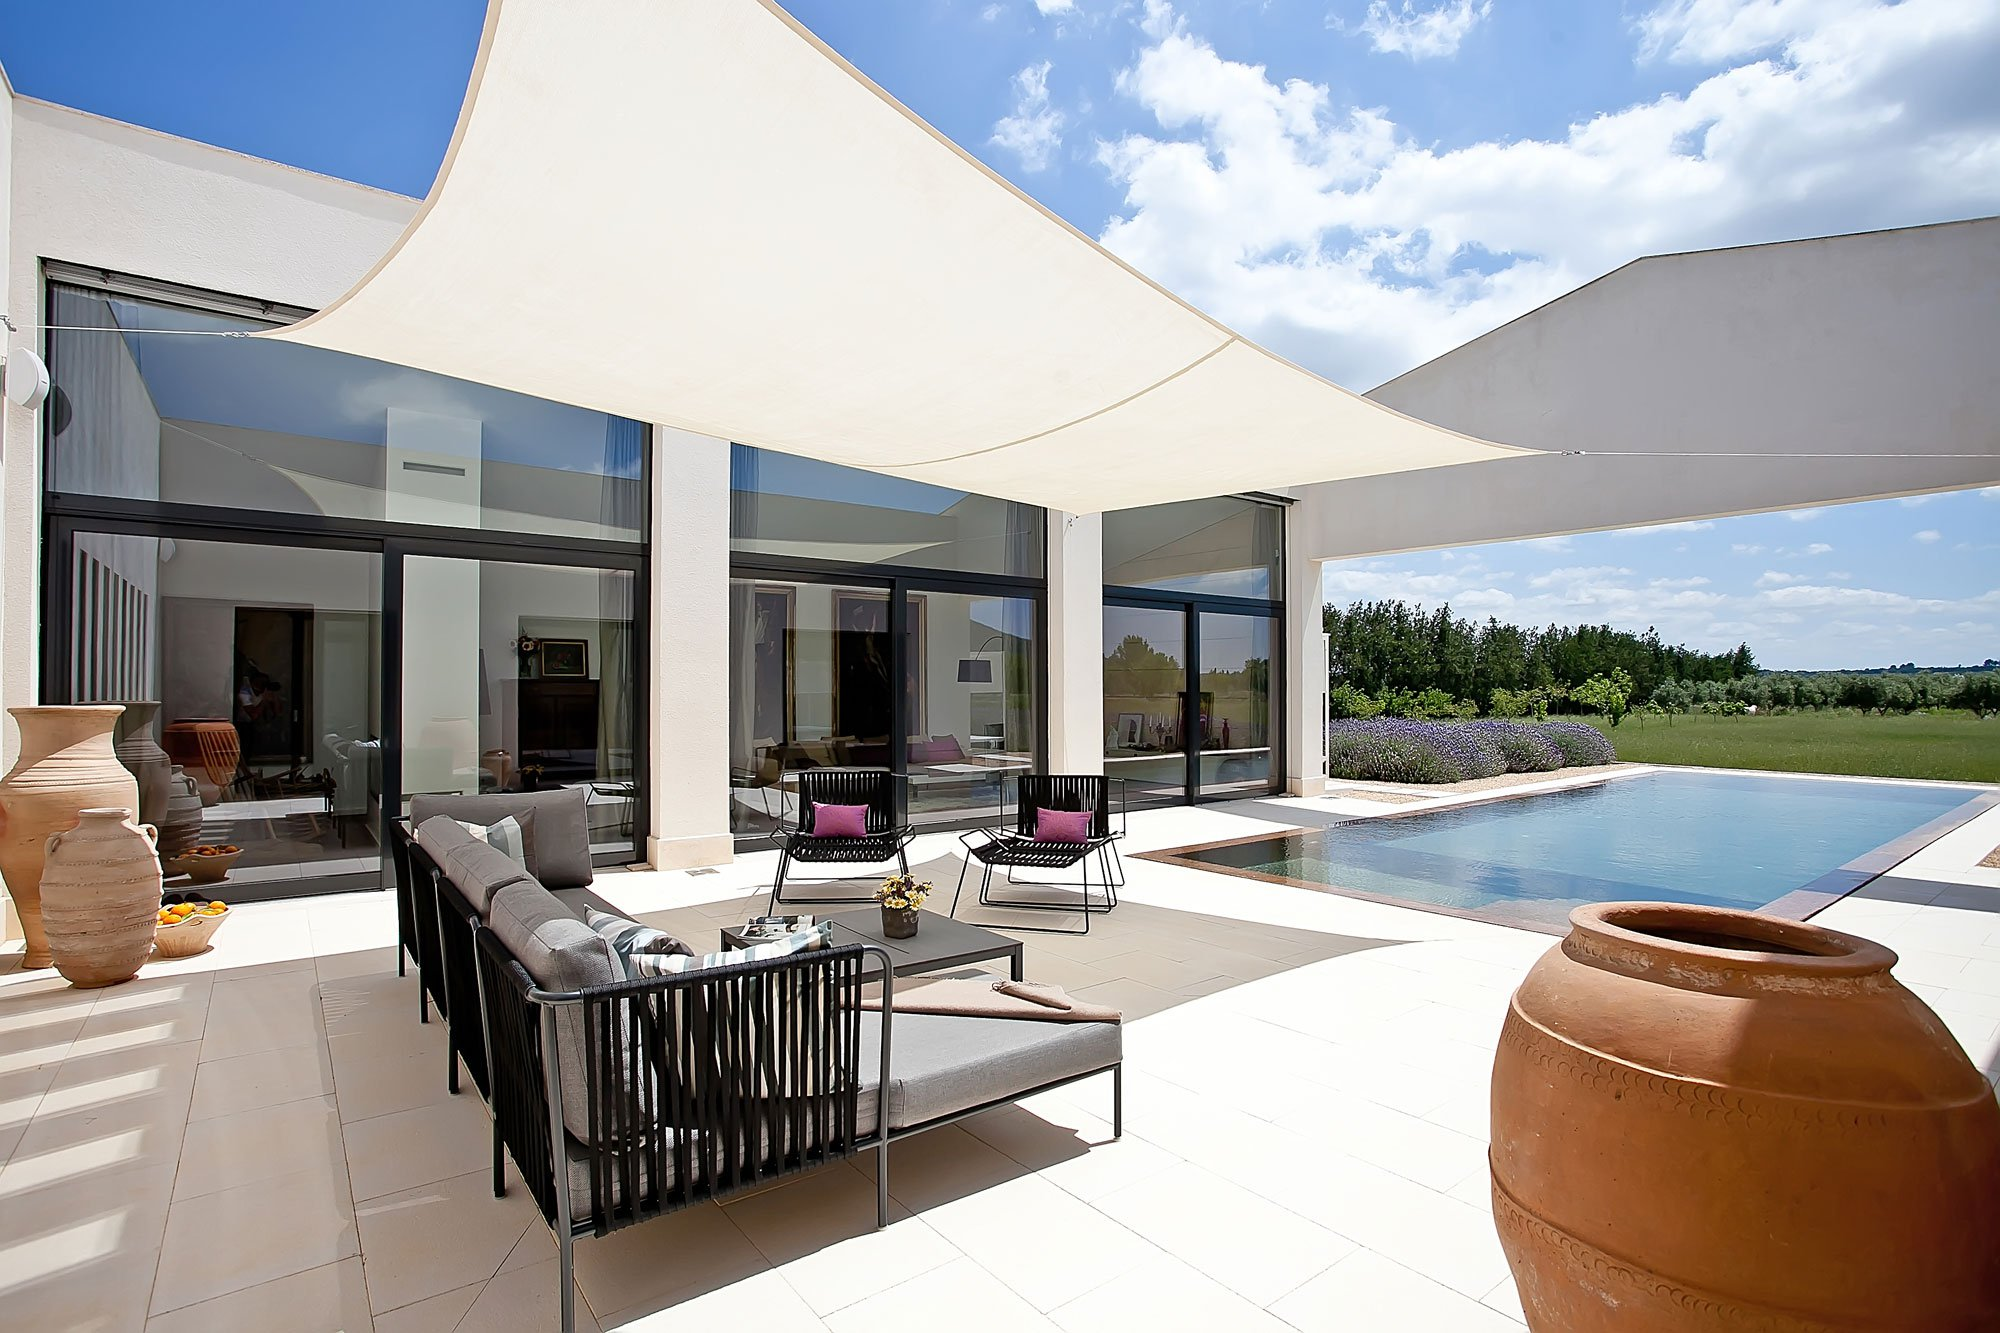 A-Holiday-Home-in-Mallorca-08